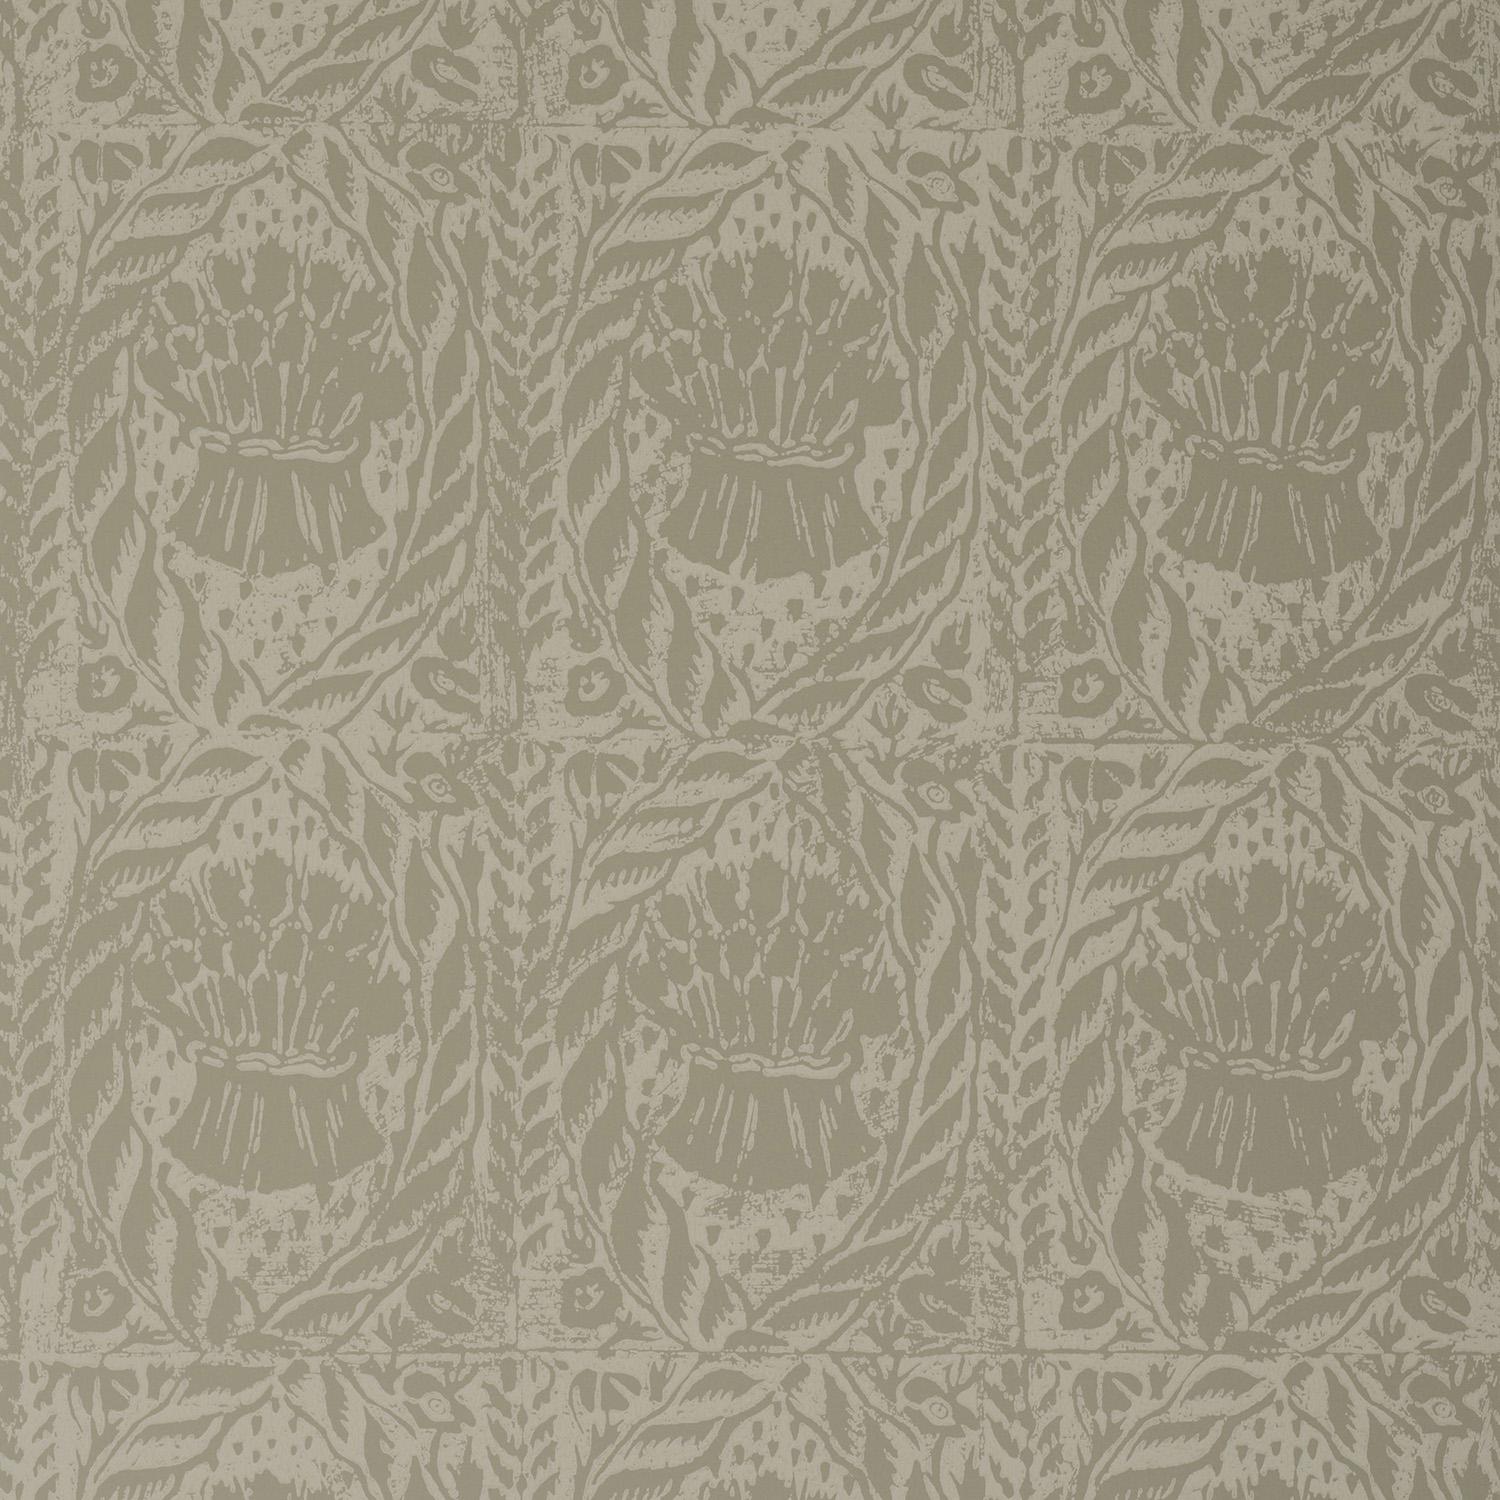 <p><strong>CORNSTOOKS</strong>cream 800-03<a href=/the-chatham-collection/cornstooks-cream-800-03>More →</a></p>